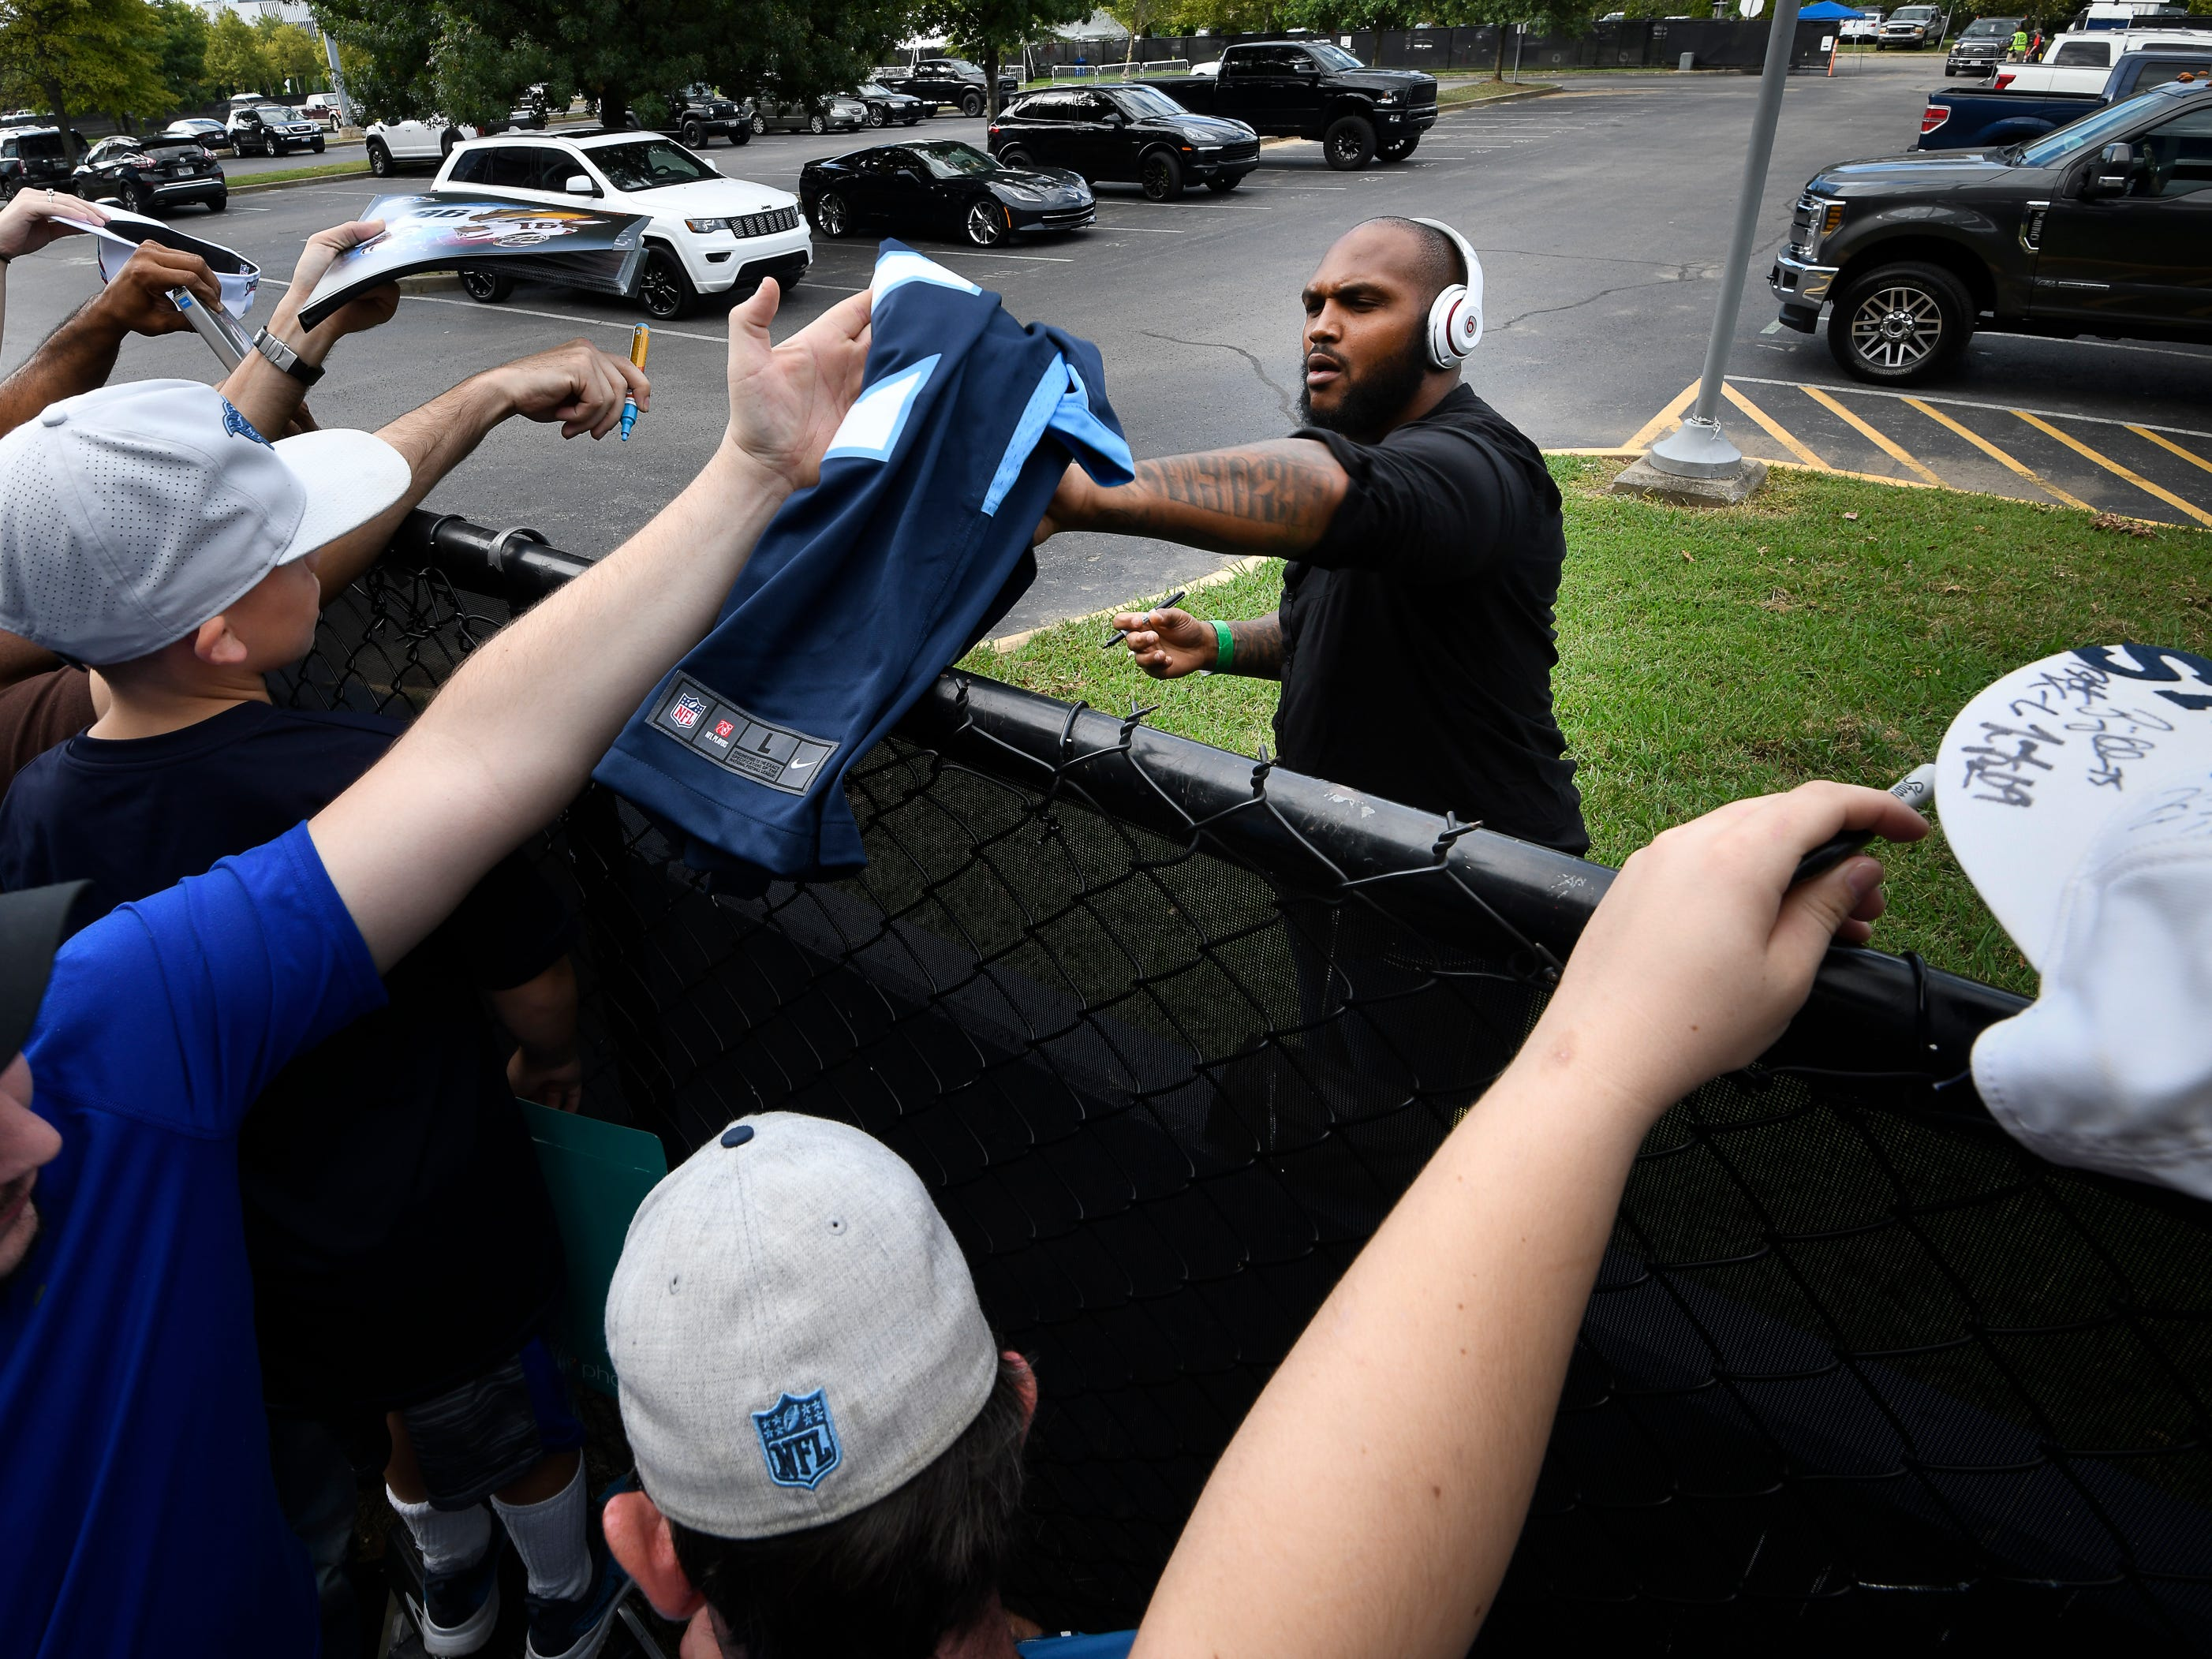 Titans defensive tackle Jurrell Casey signs autographs for fans before the game against the Texans at Nissan Stadium Sunday, Sept. 16, 2018, in Nashville, Tenn.